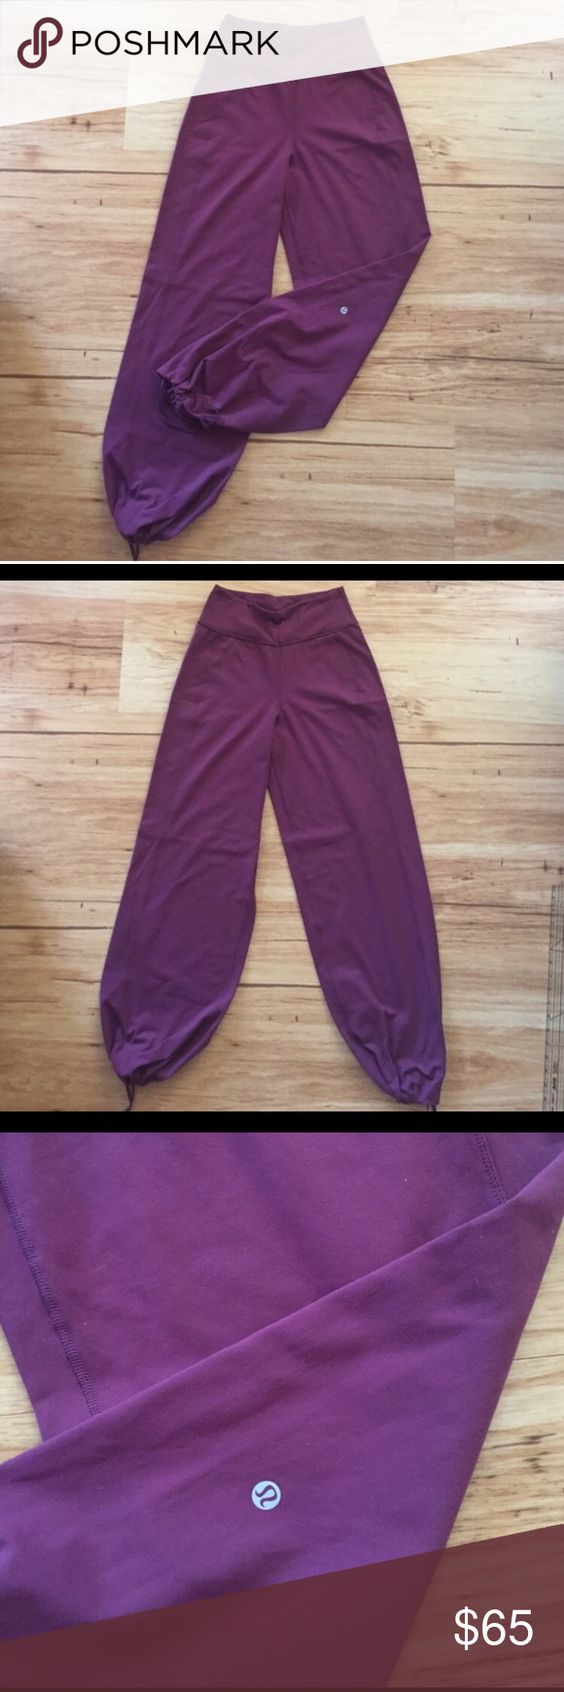 Lululemon full length gaucho pants